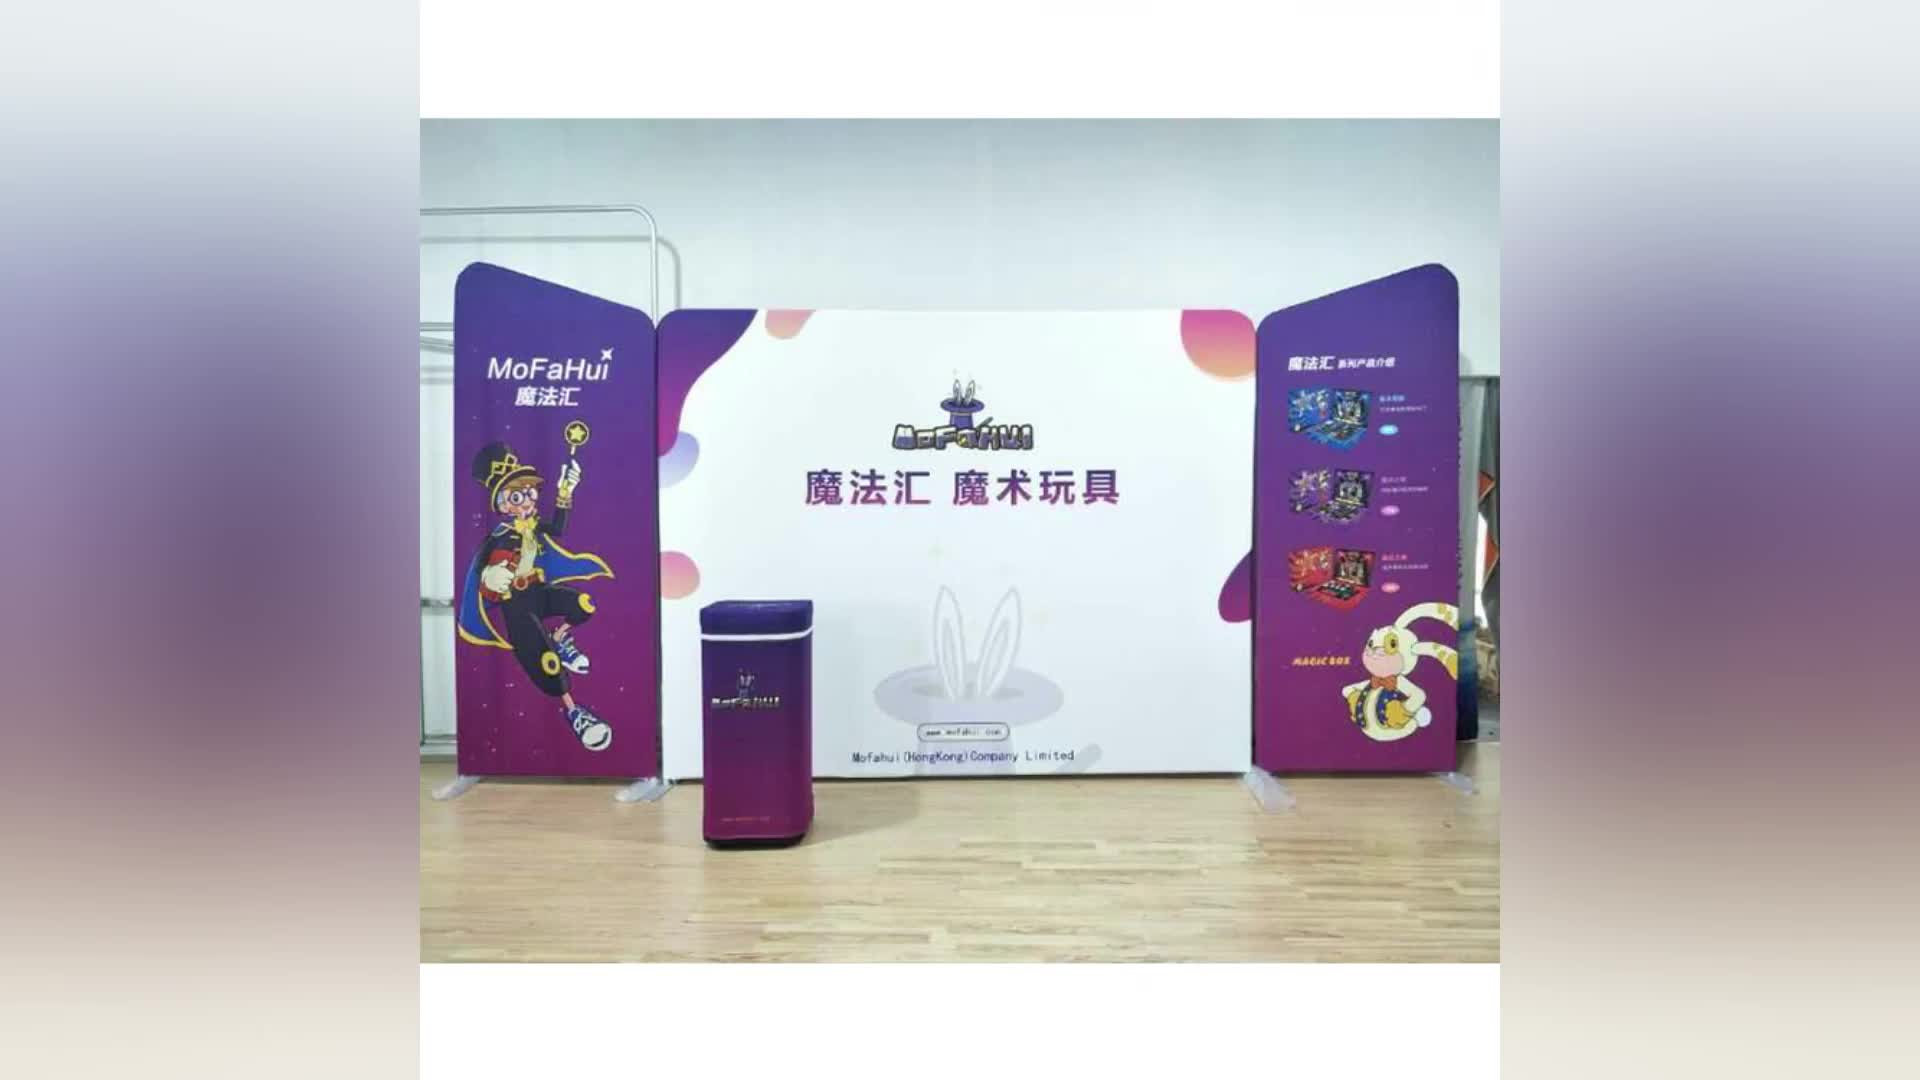 Hot sale easy setup custom design aluminum design 3x6 exhibition booth for trade show booth